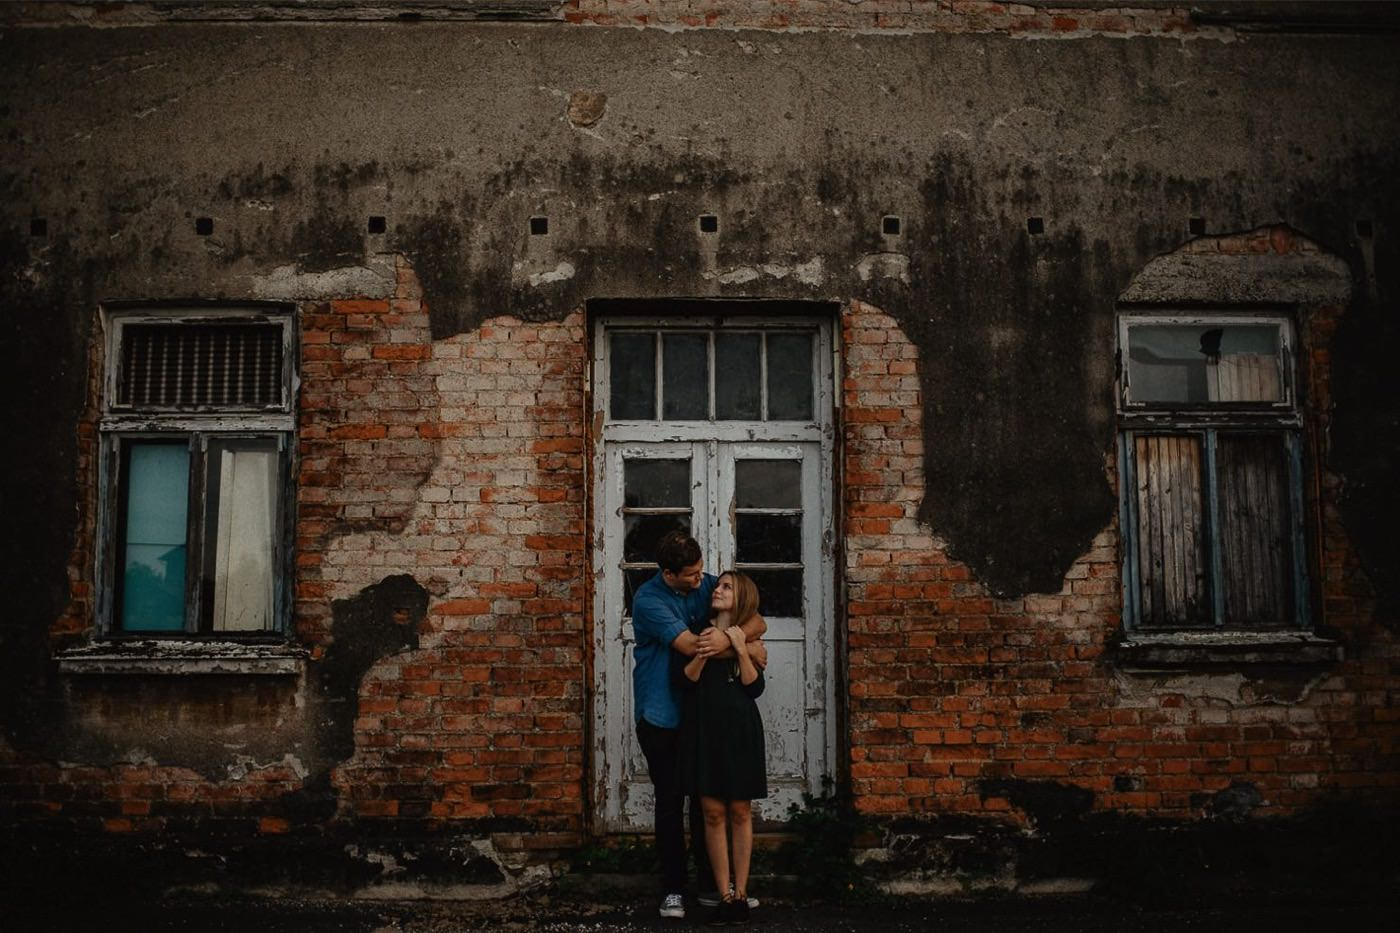 couple photographer karlovac croatia